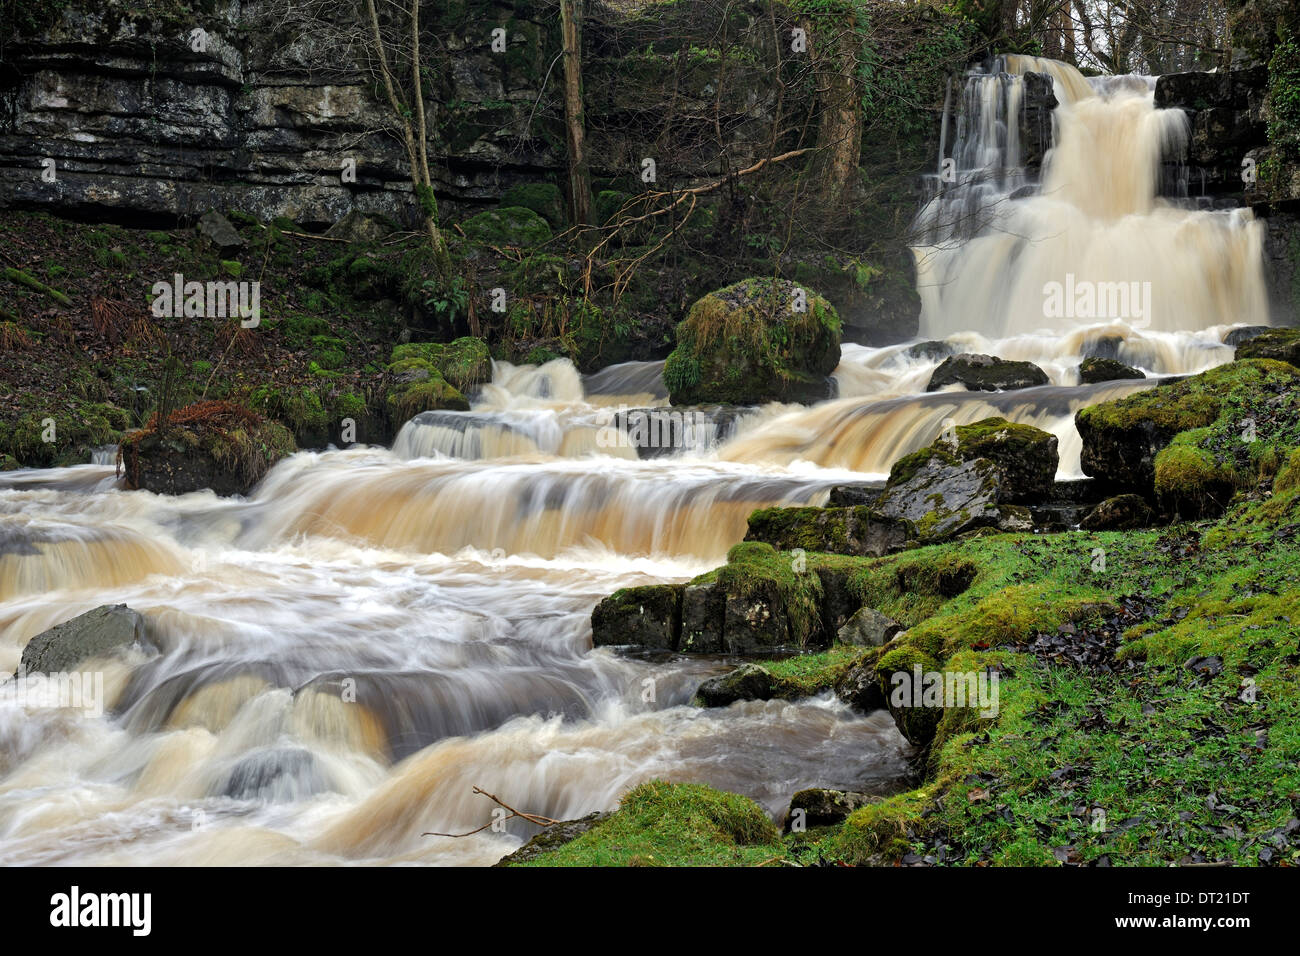 Cliff Beck, a stepped waterfall near Thwaite, Yorkshire Dales National Park, England - Stock Image